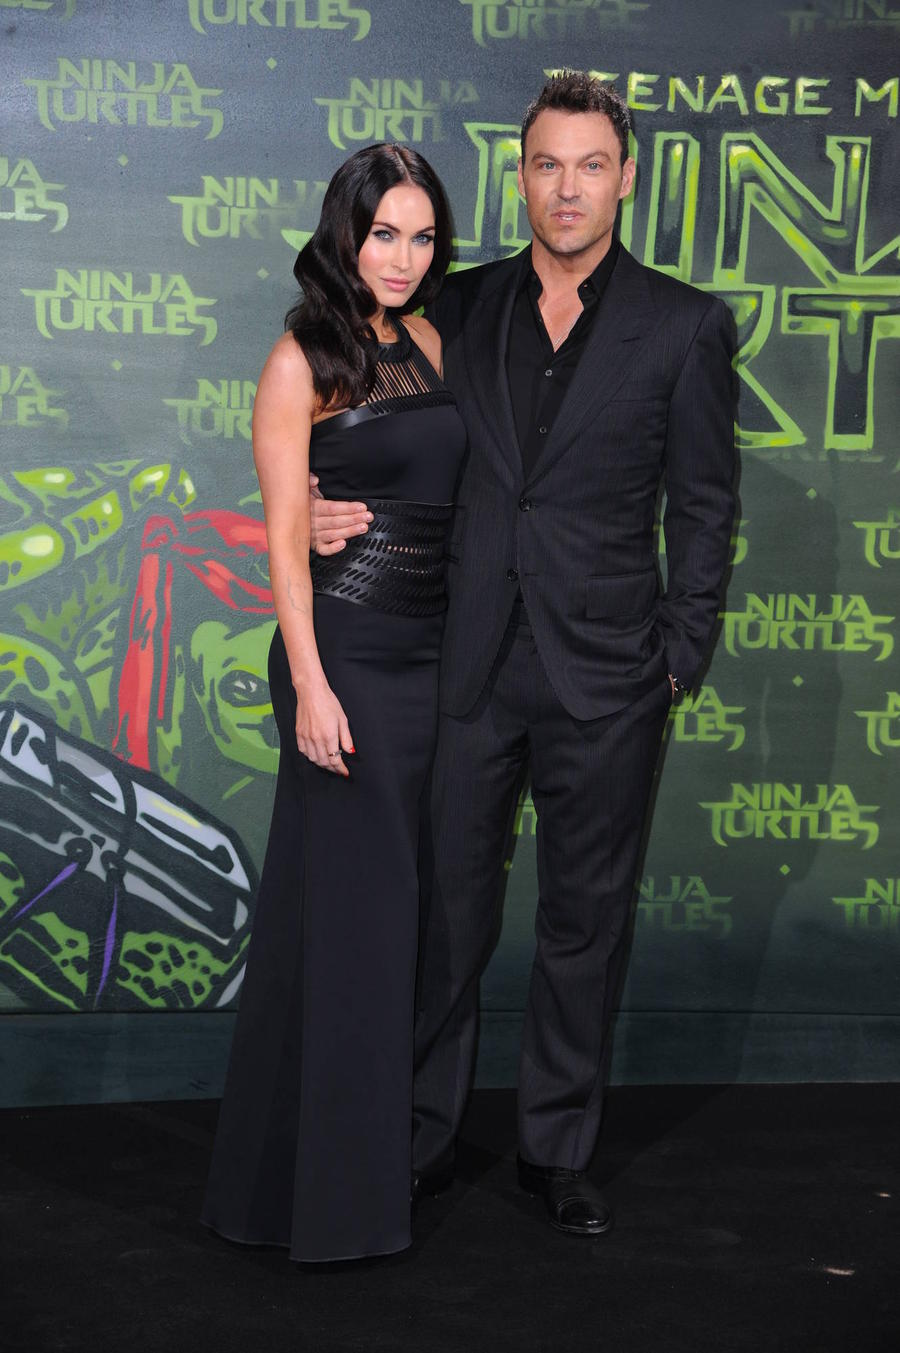 Megan Fox 'Rethinks' Divorce Plans